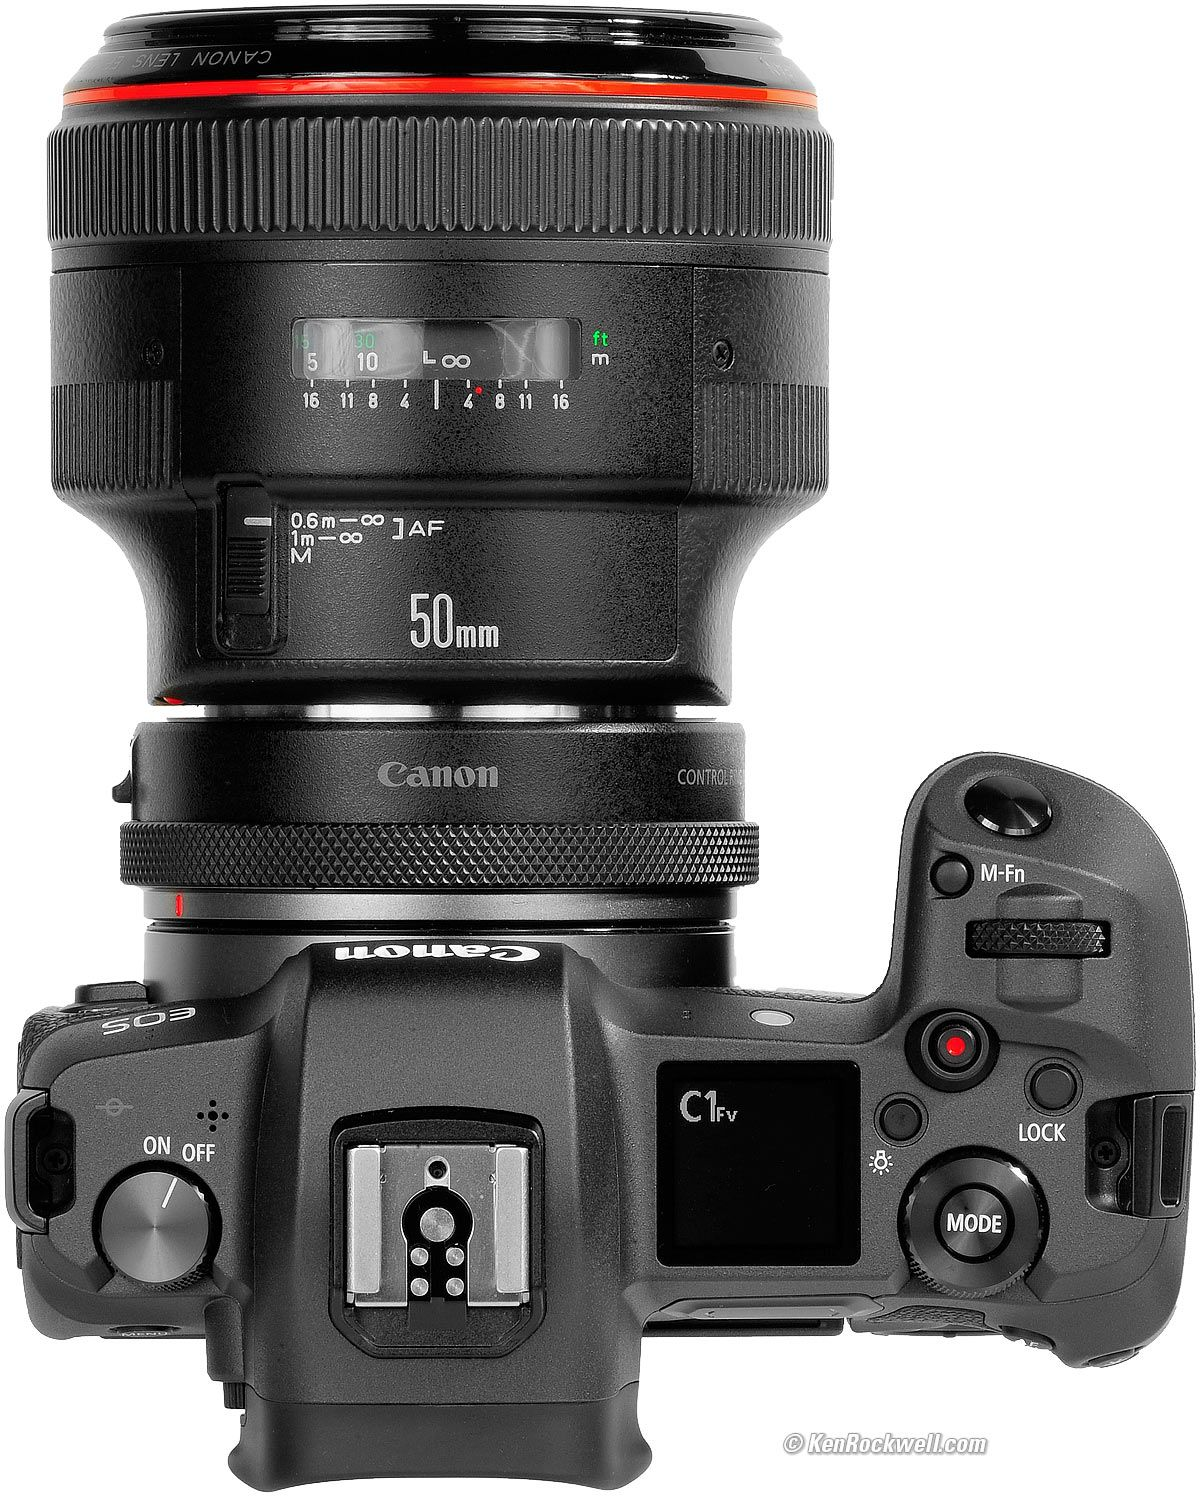 Canon Eos R And 50mm F 1 L On Ef Adapter Canon Camera Best Digital Camera Camera Photography